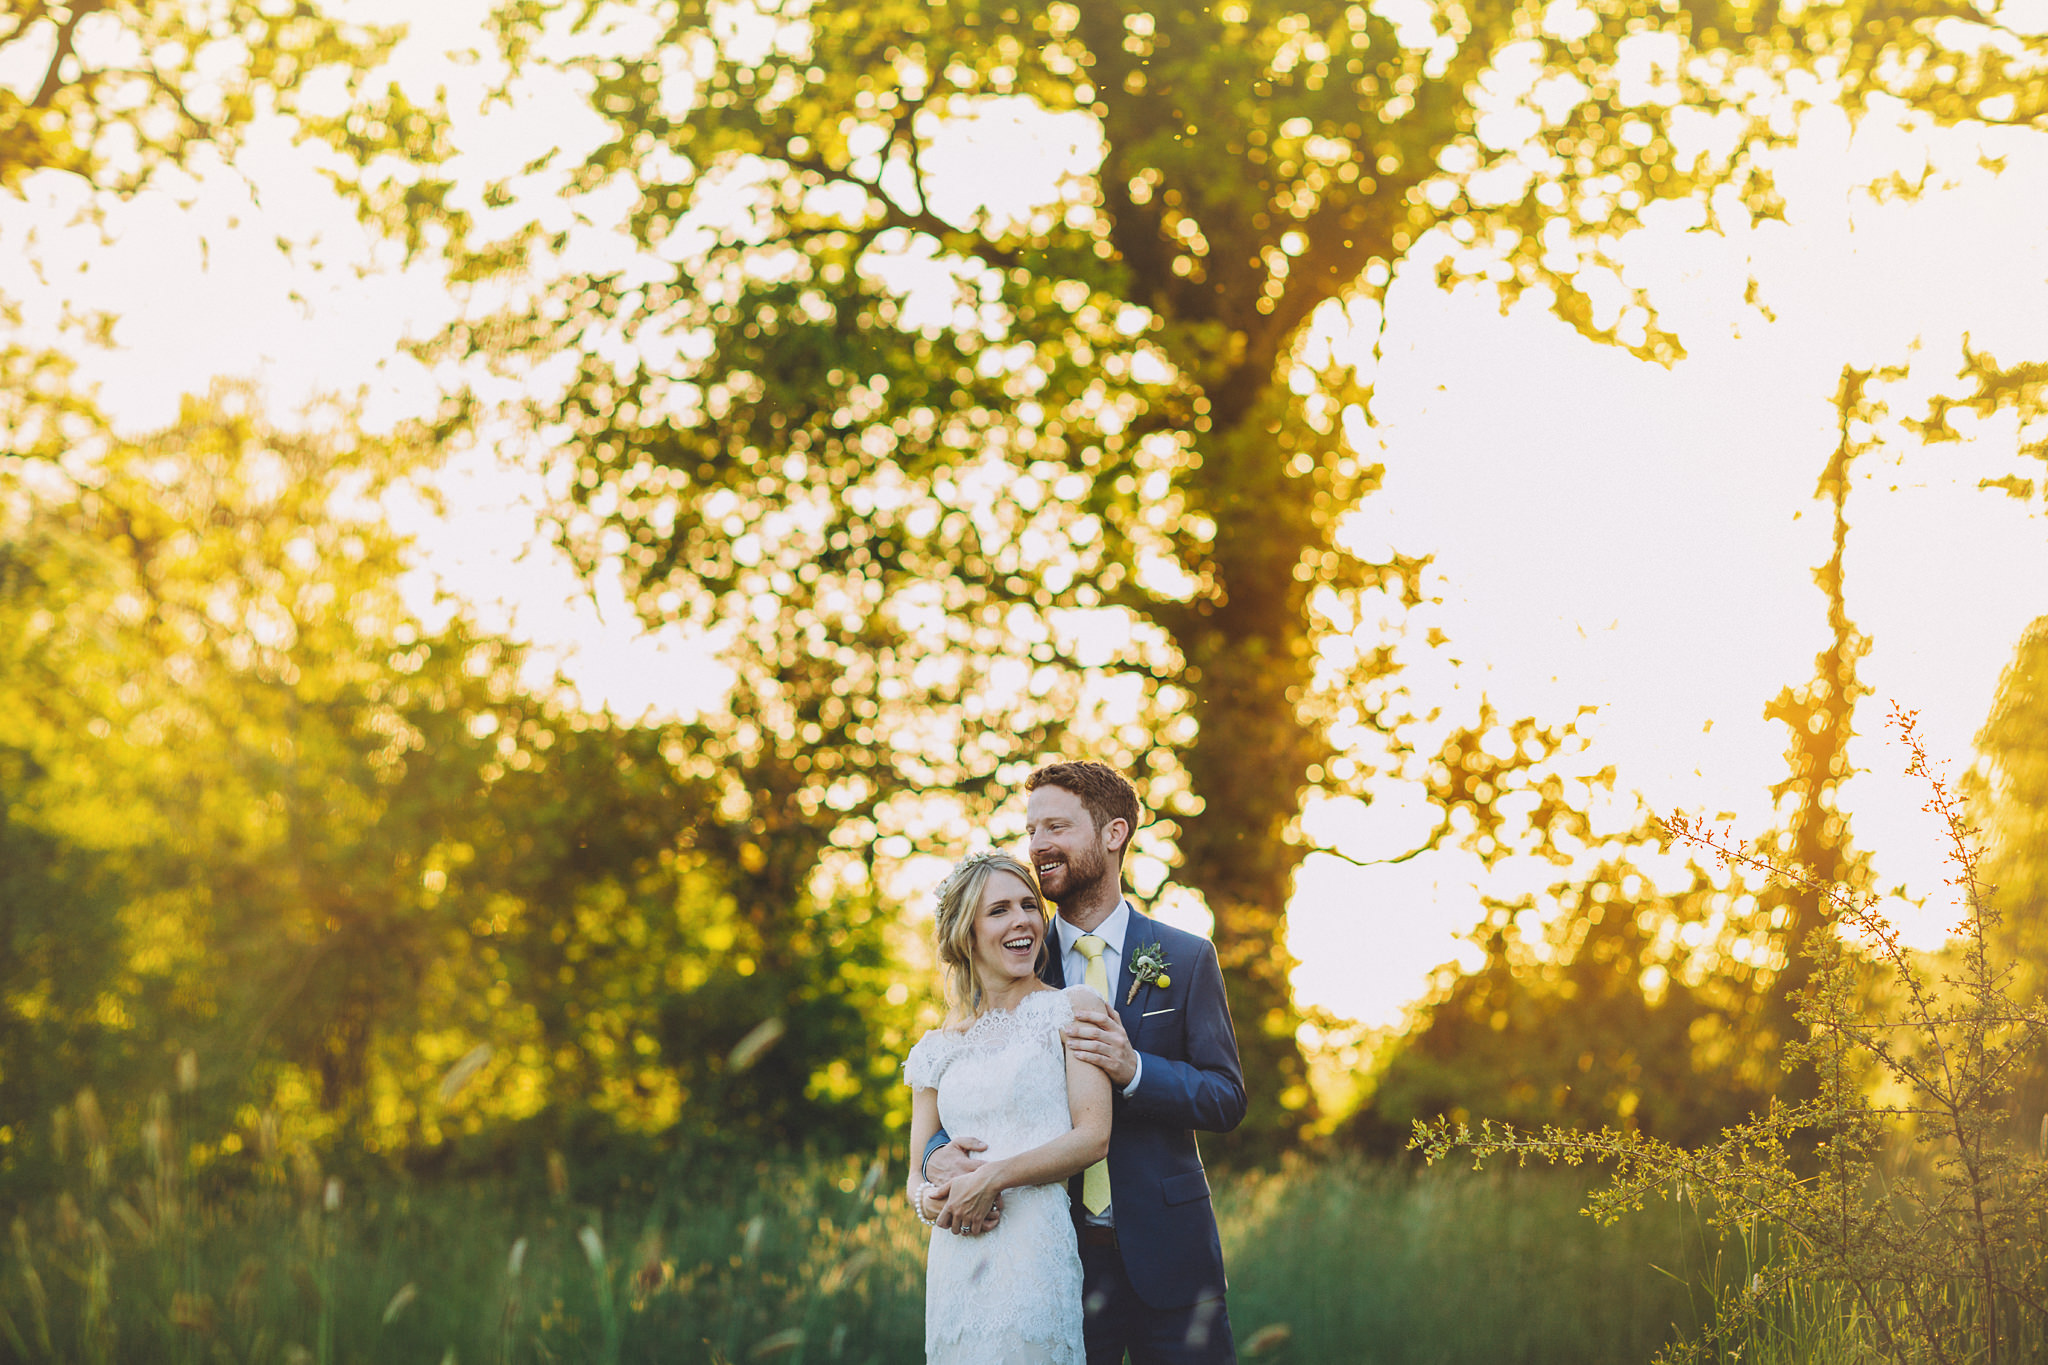 paul-marbrook-best-wedding-photographer-north-wales-050058